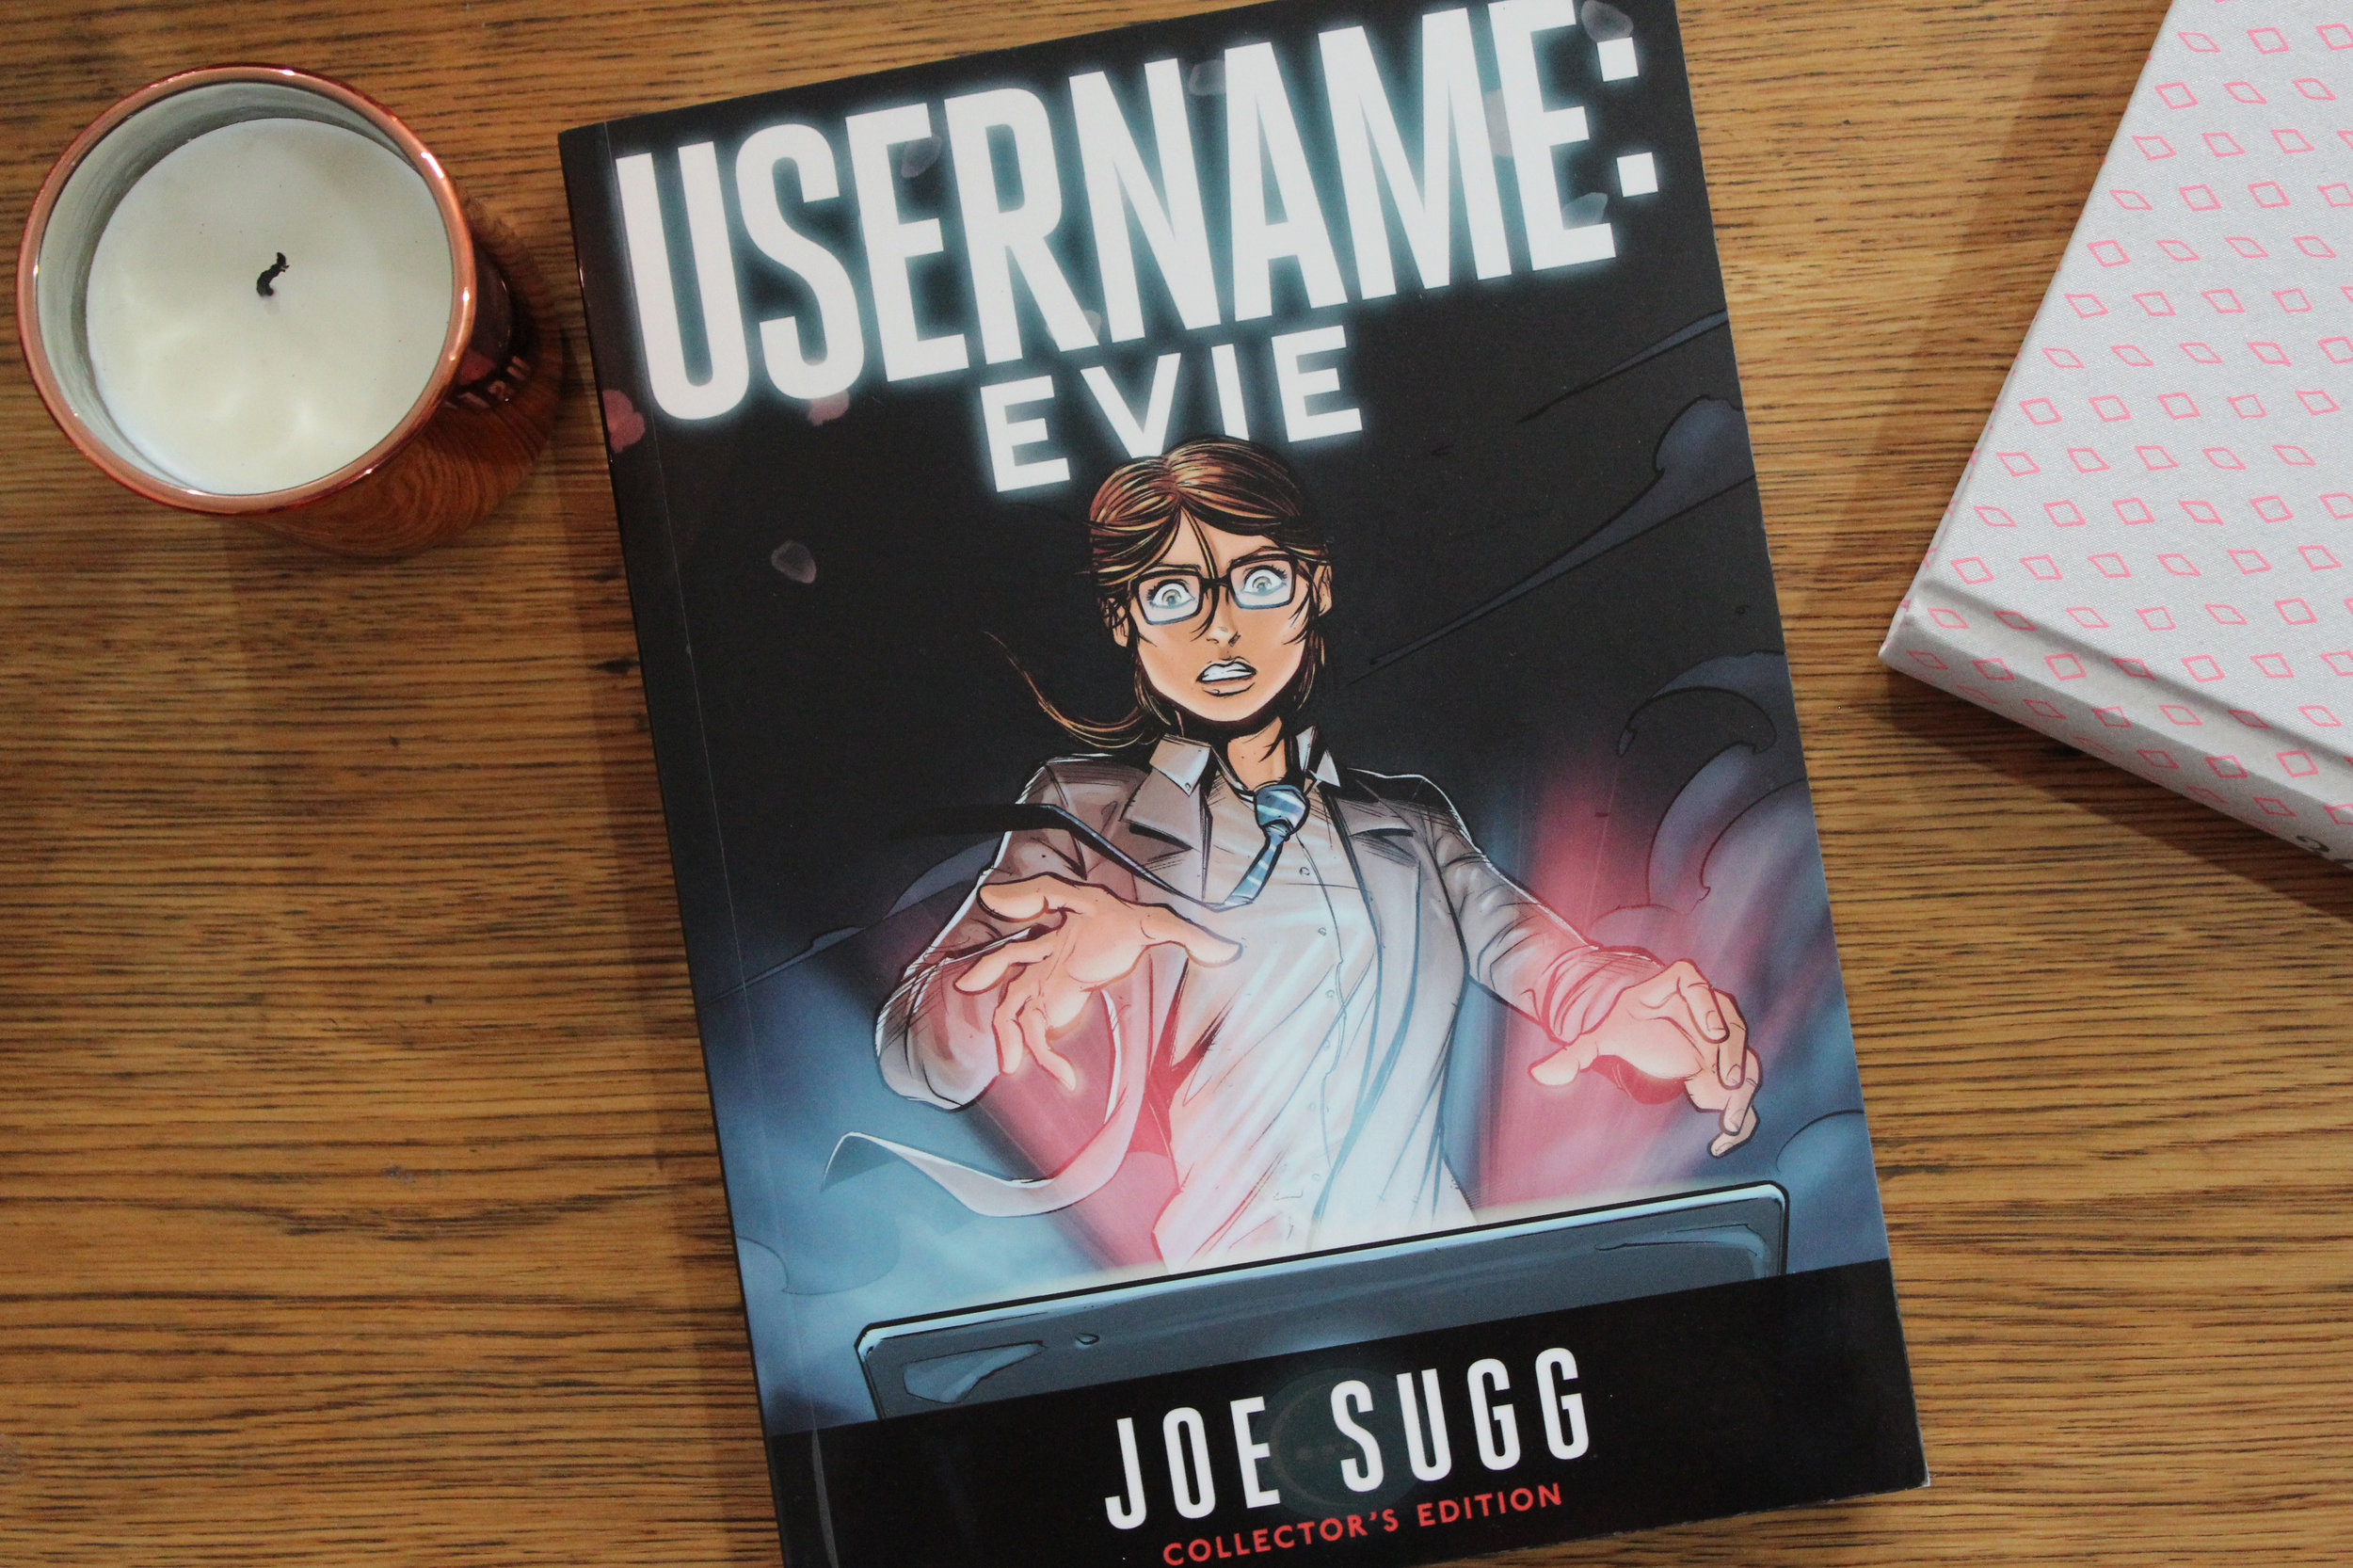 Username Evie Comic Review | EmmaLouisa.com